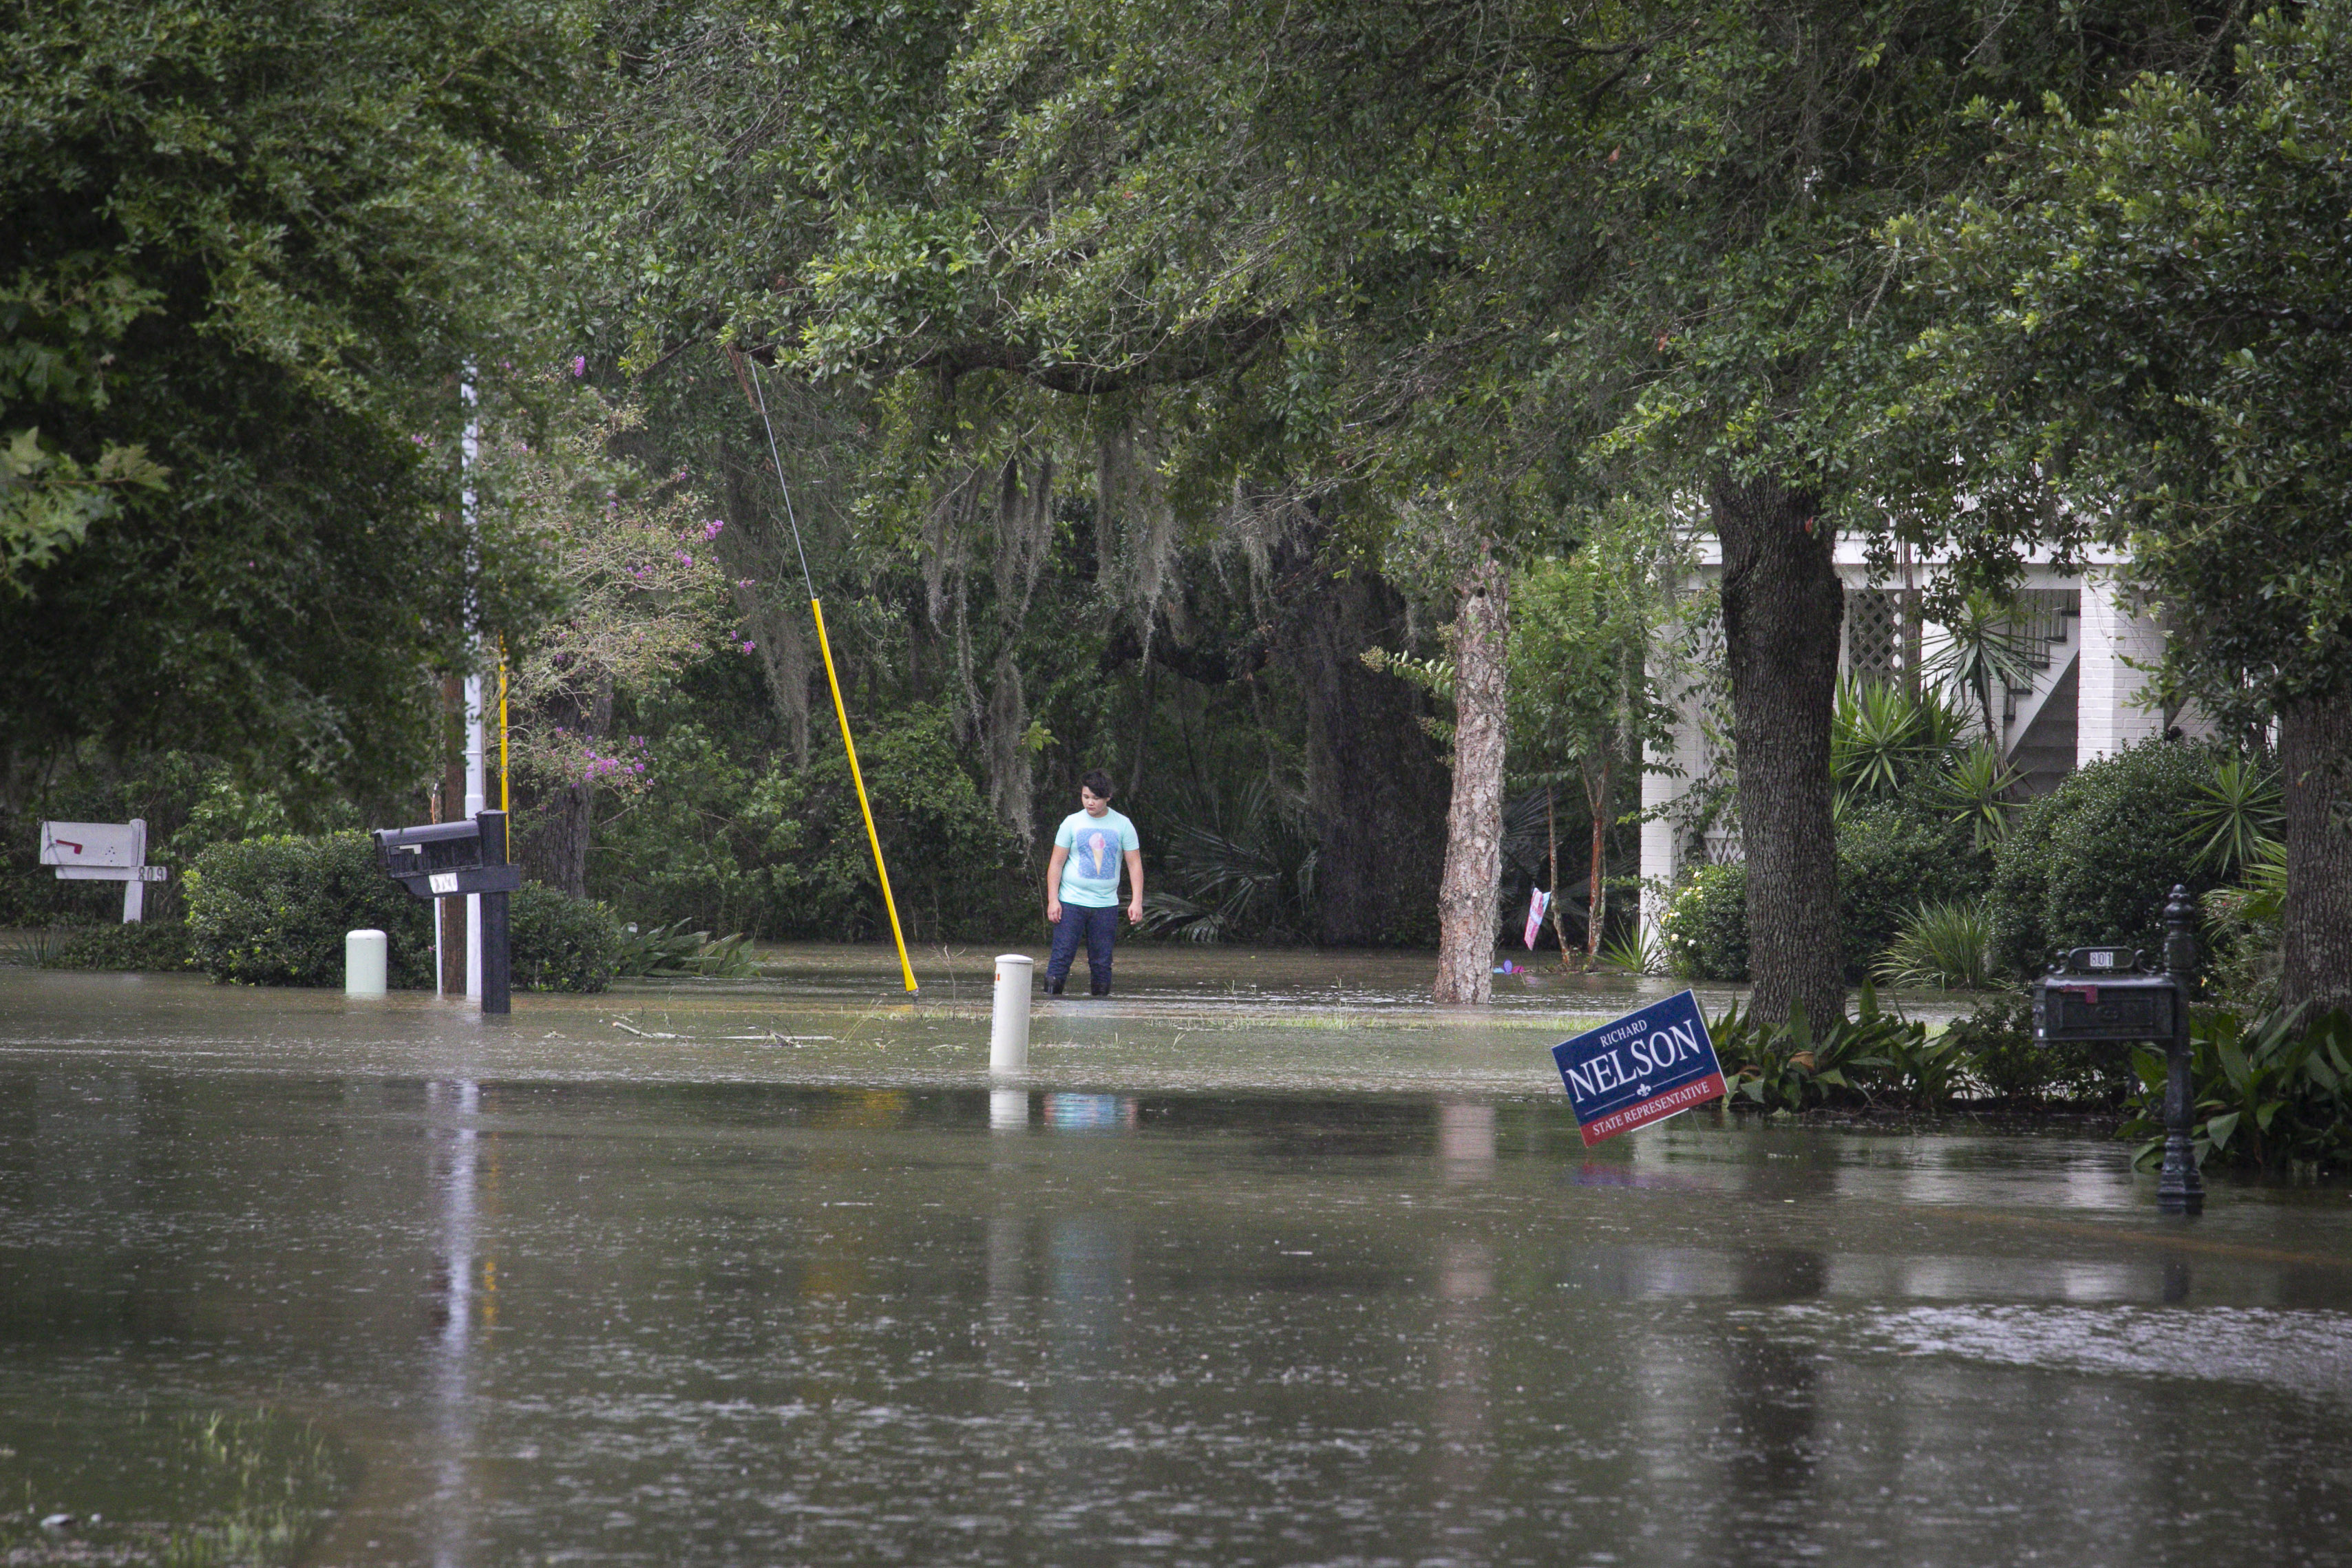 A resident stands in flood water outside a home near Lake Pontchartrain, after Tropical Storm Barry makes landfall in Lewisburg, Louisiana U.S., on Friday, July 13, 2019. Barry is threatening to bring life-threatening floods after making landfall in Louisiana on Saturday, as the tropical storm lashes the state with as much as two feet of rain. (Photo by Nicole Craine/Bloomberg via Getty Images)